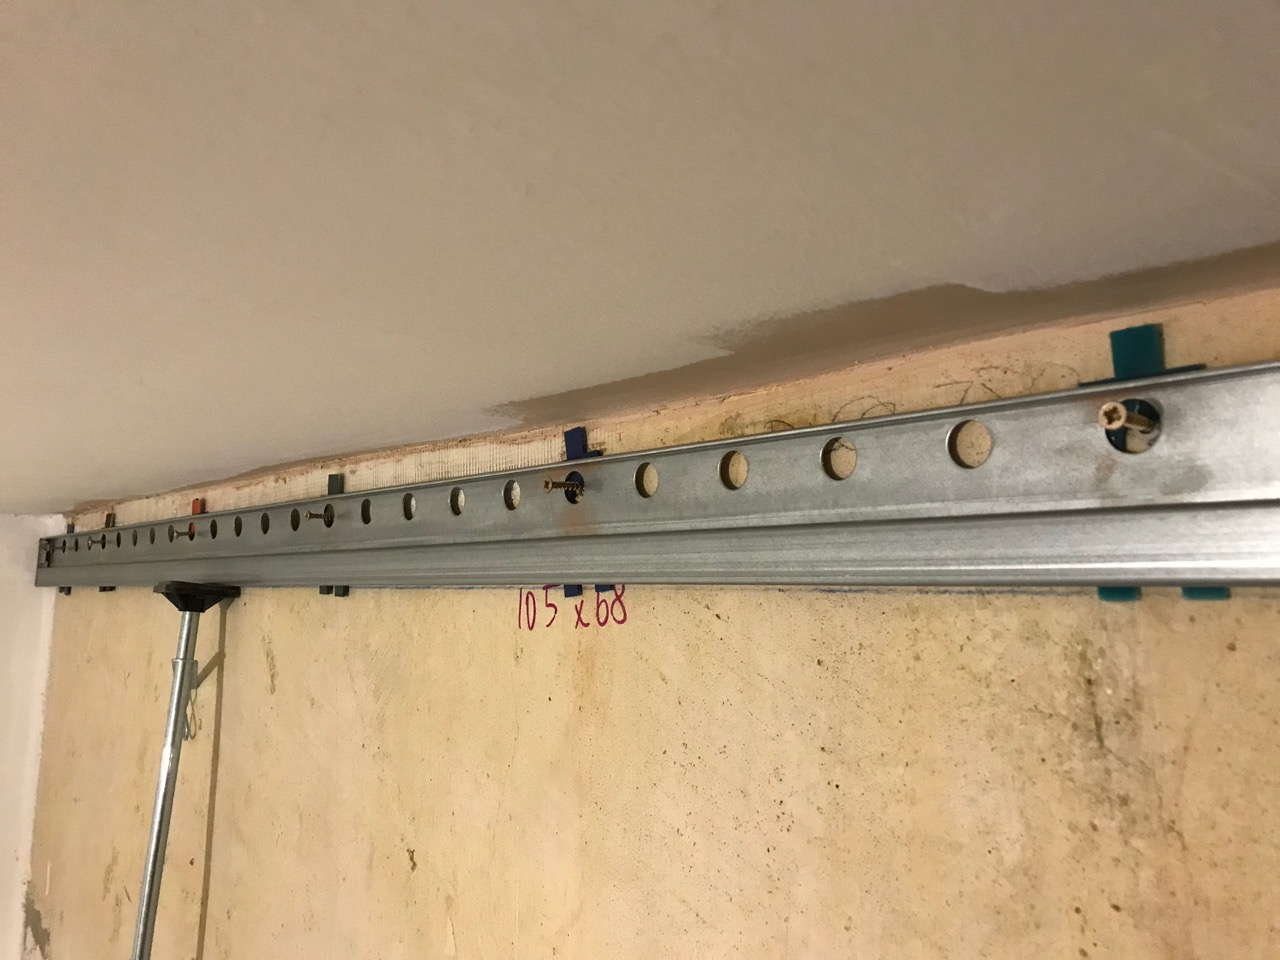 IKEA METOD rail with screws and spacers